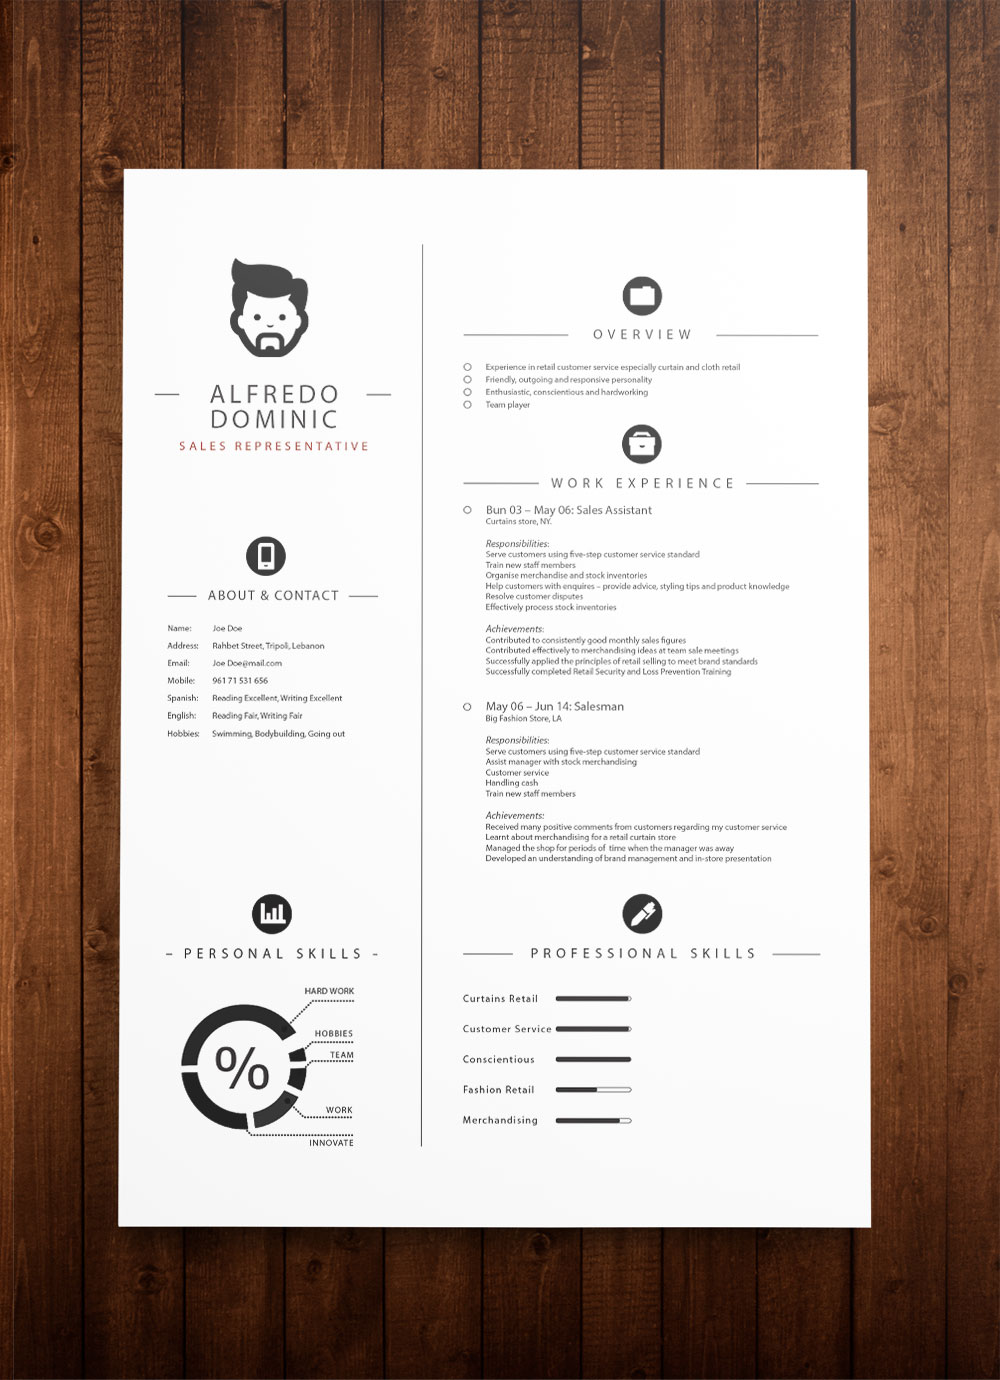 beautiful and simple curriculum vitae template - Top Resume Templates Free